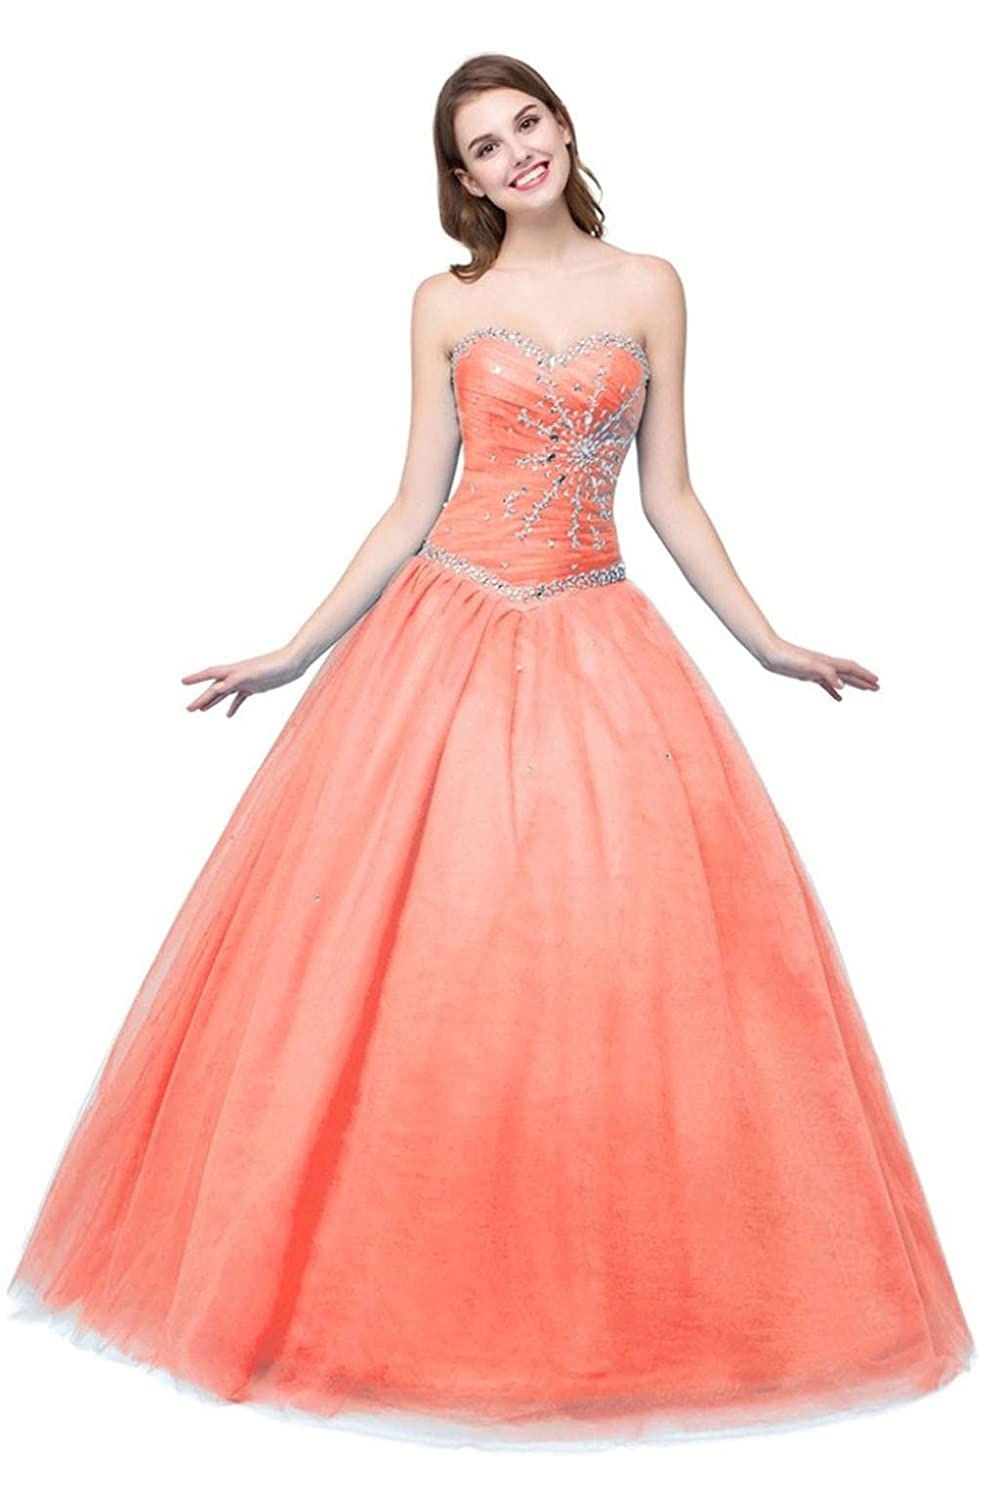 orange Vantexi Women's Strapless Tulle Beaded Long Quinceanera Dresses Prom Gowns